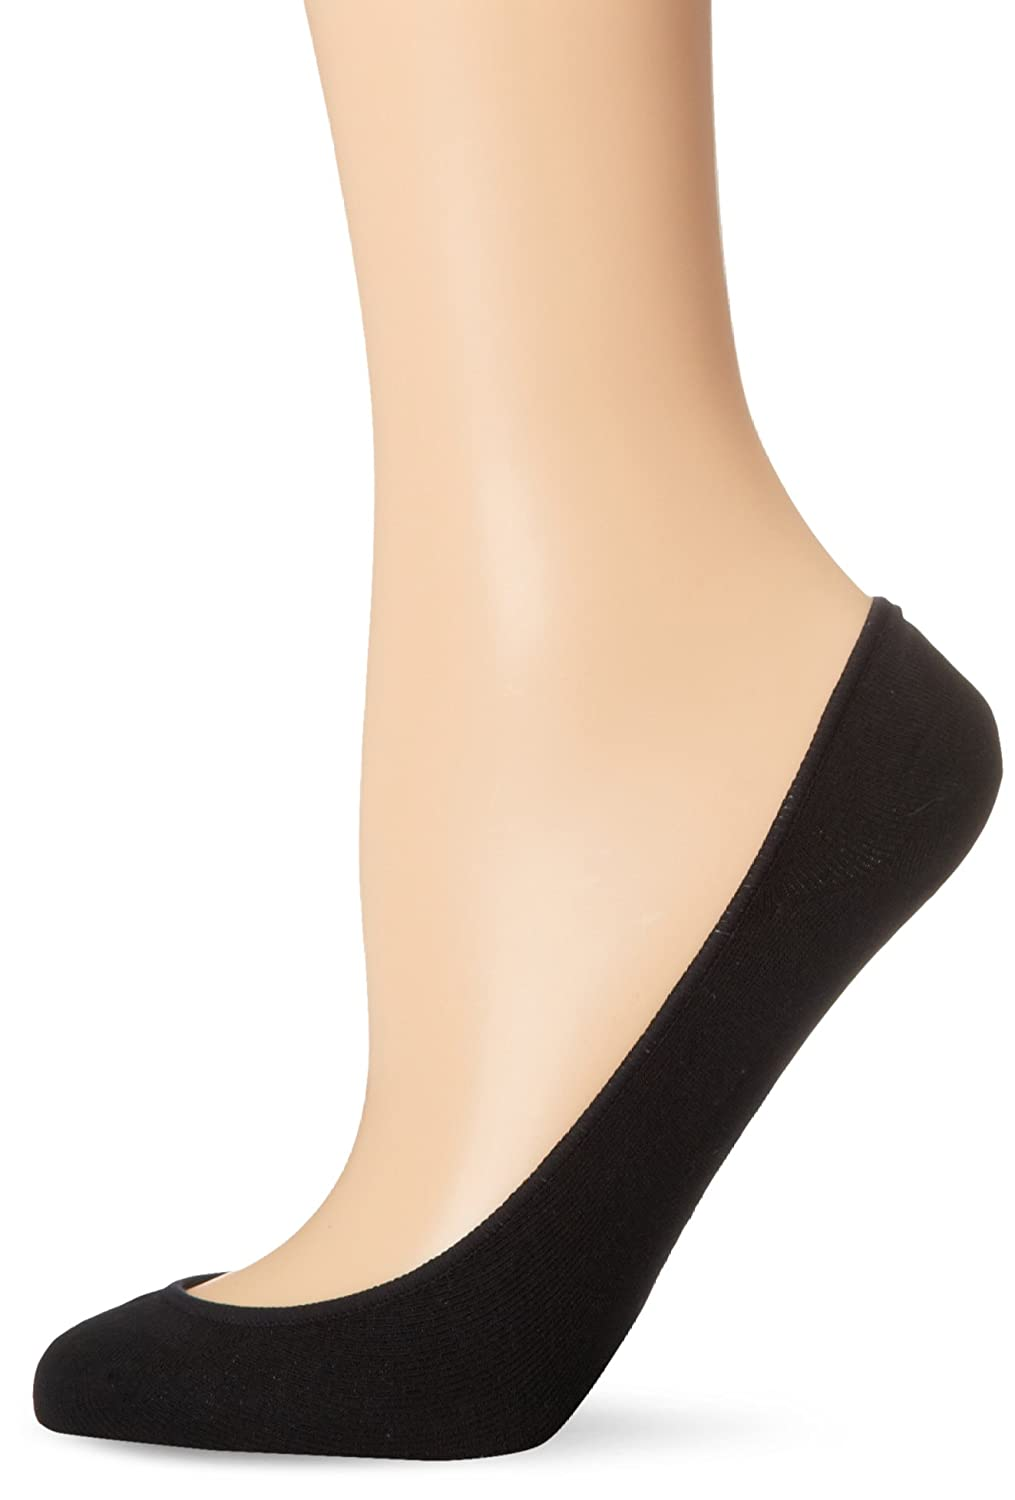 No Nonsense Women's Cotton Ultra Low Cut Liner Sock 6-Pack, Black, One Size  at Amazon Women's Clothing store: